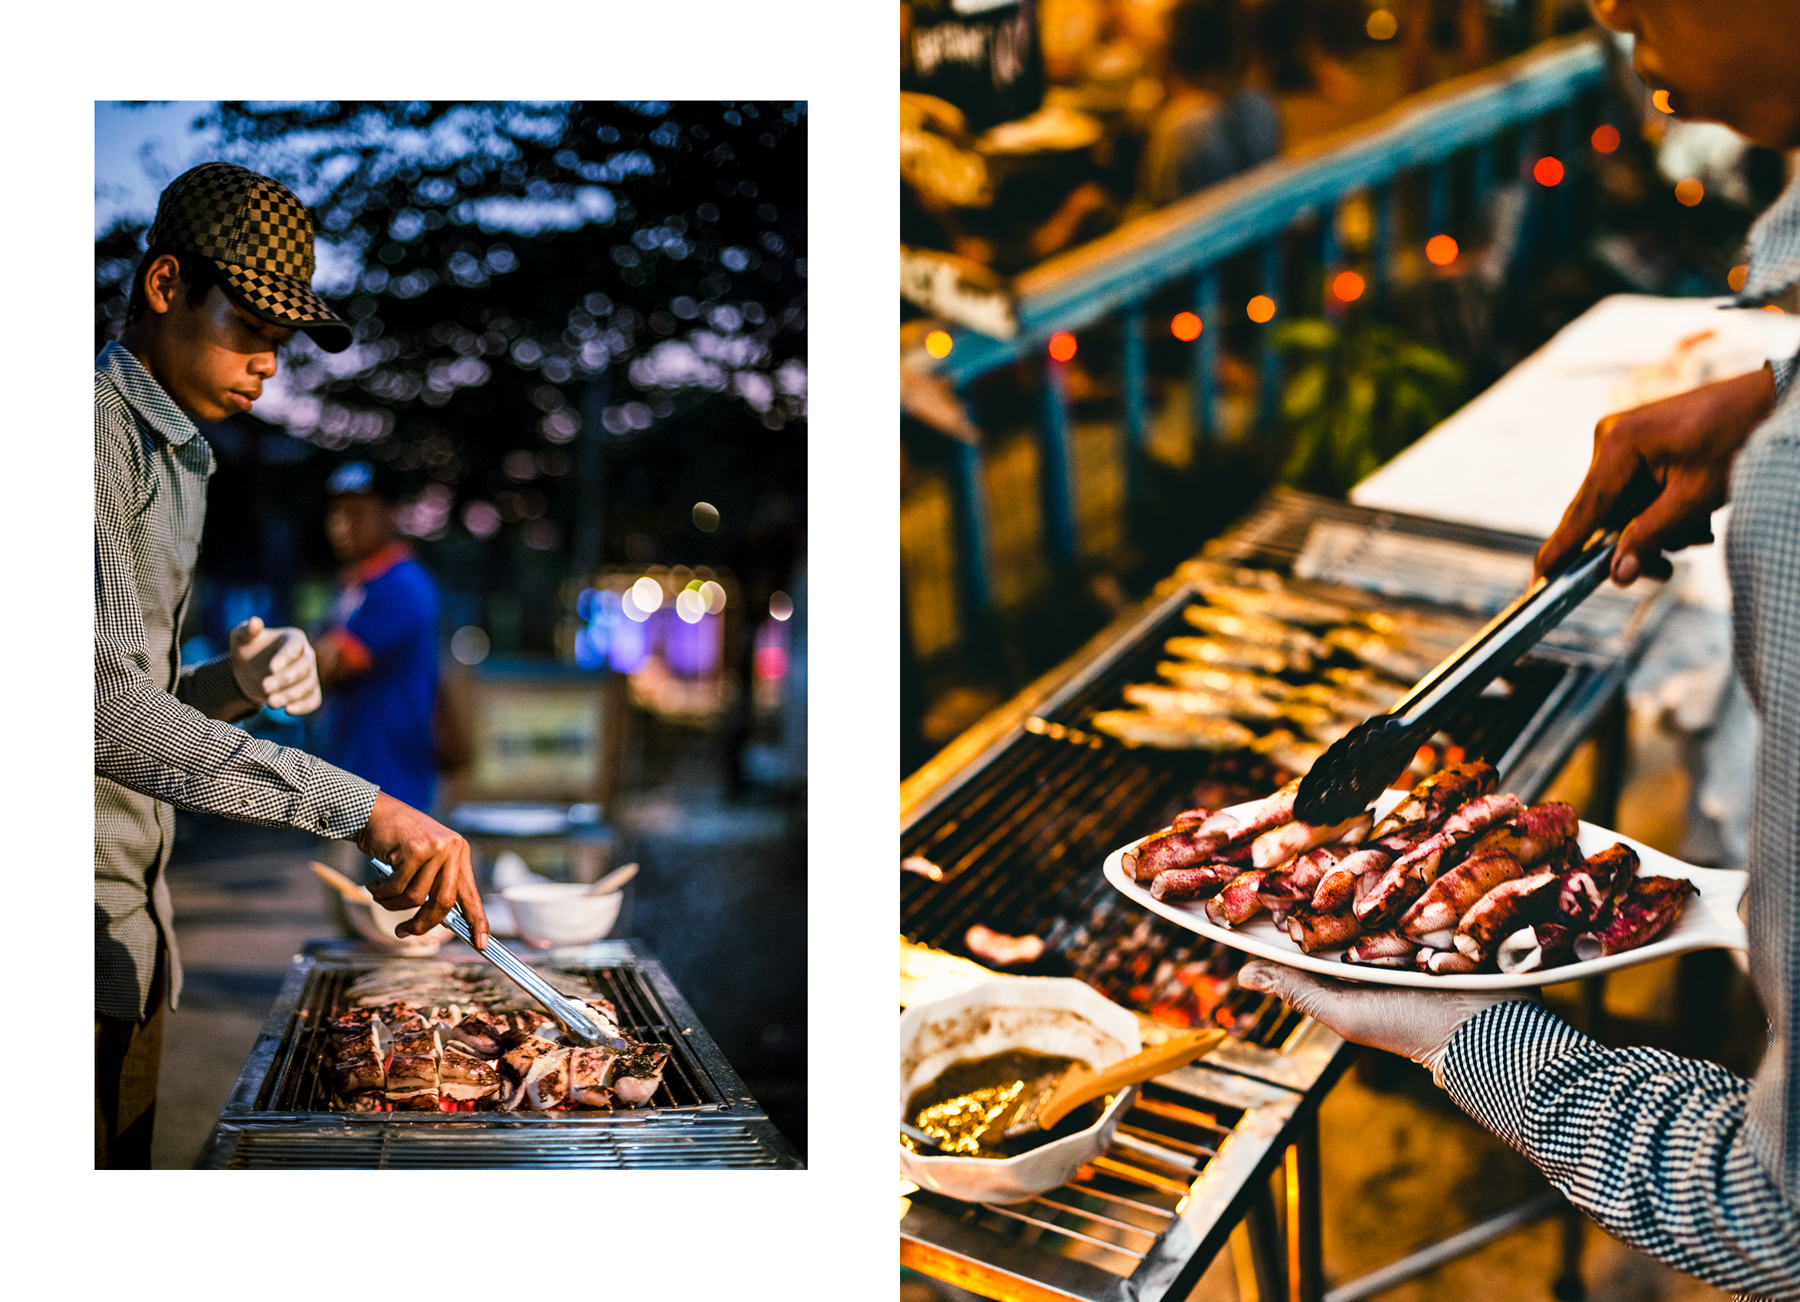 The barbecue buffénights at the Fishing Hook are vastly popular and requires booking in advance and prepayment.